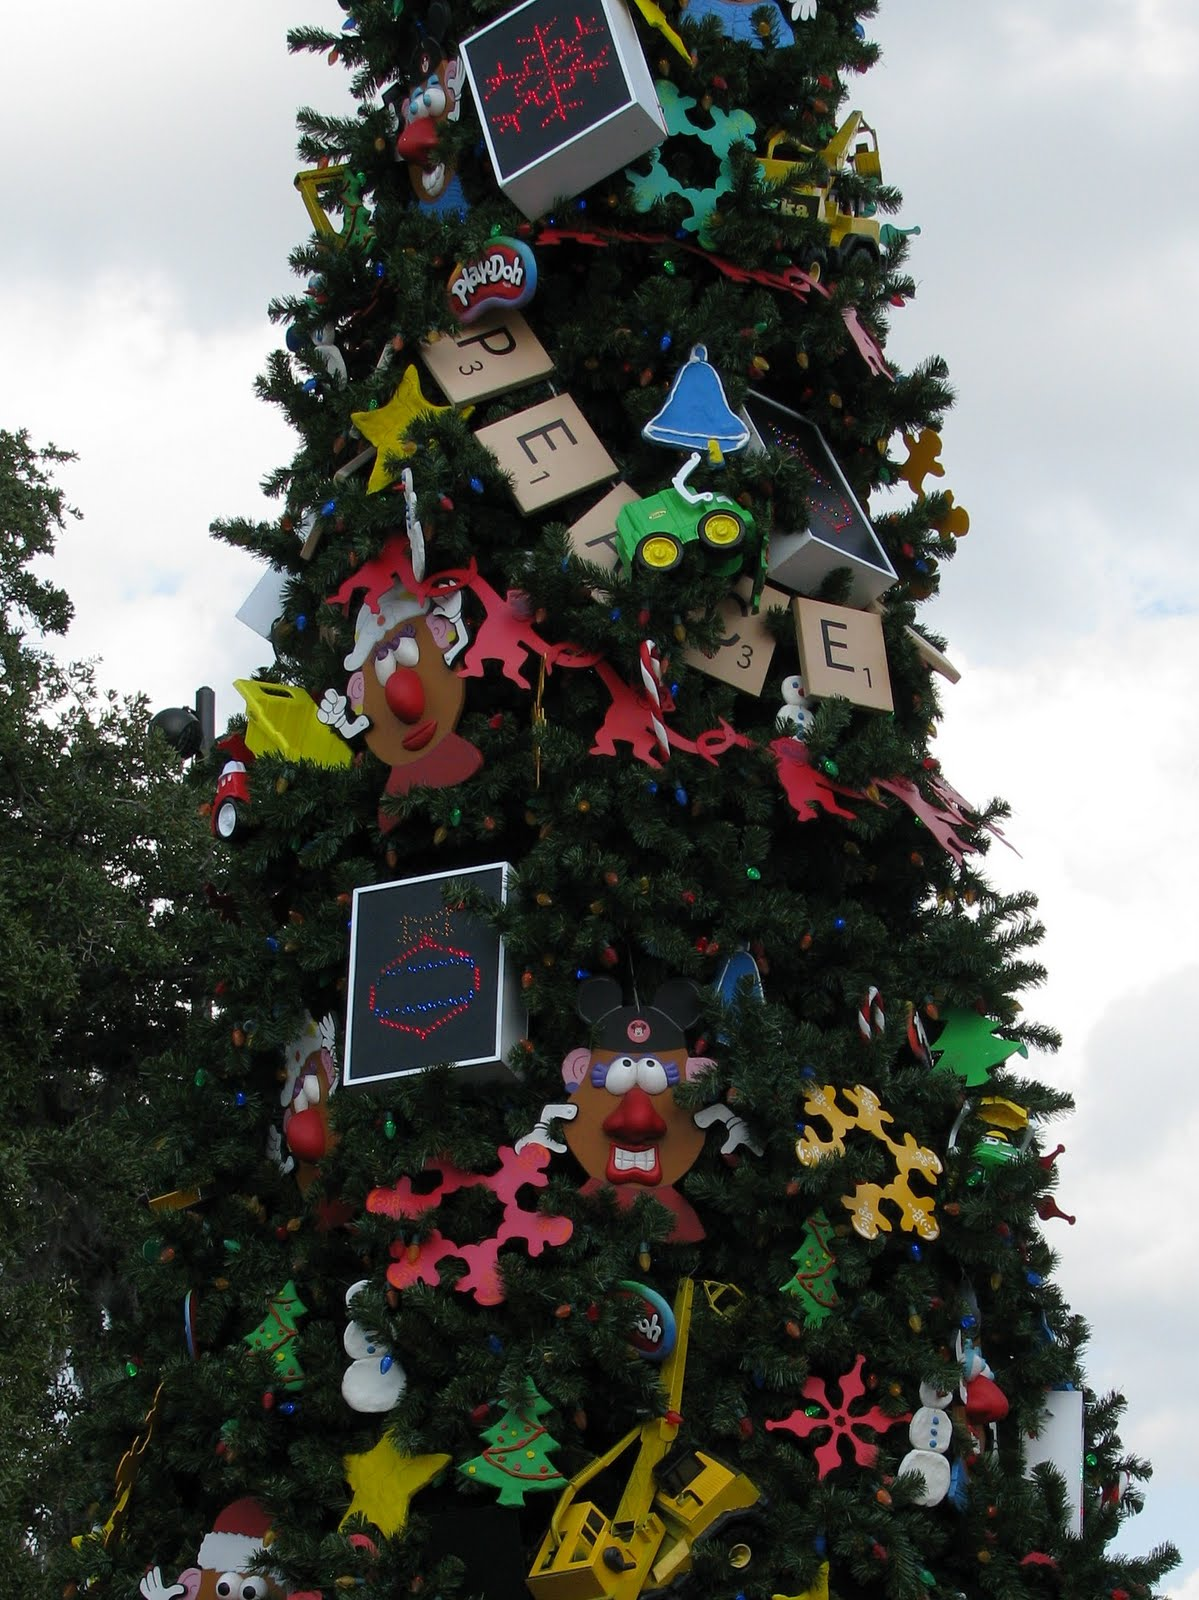 Disney world christmas trees show off unique decorations